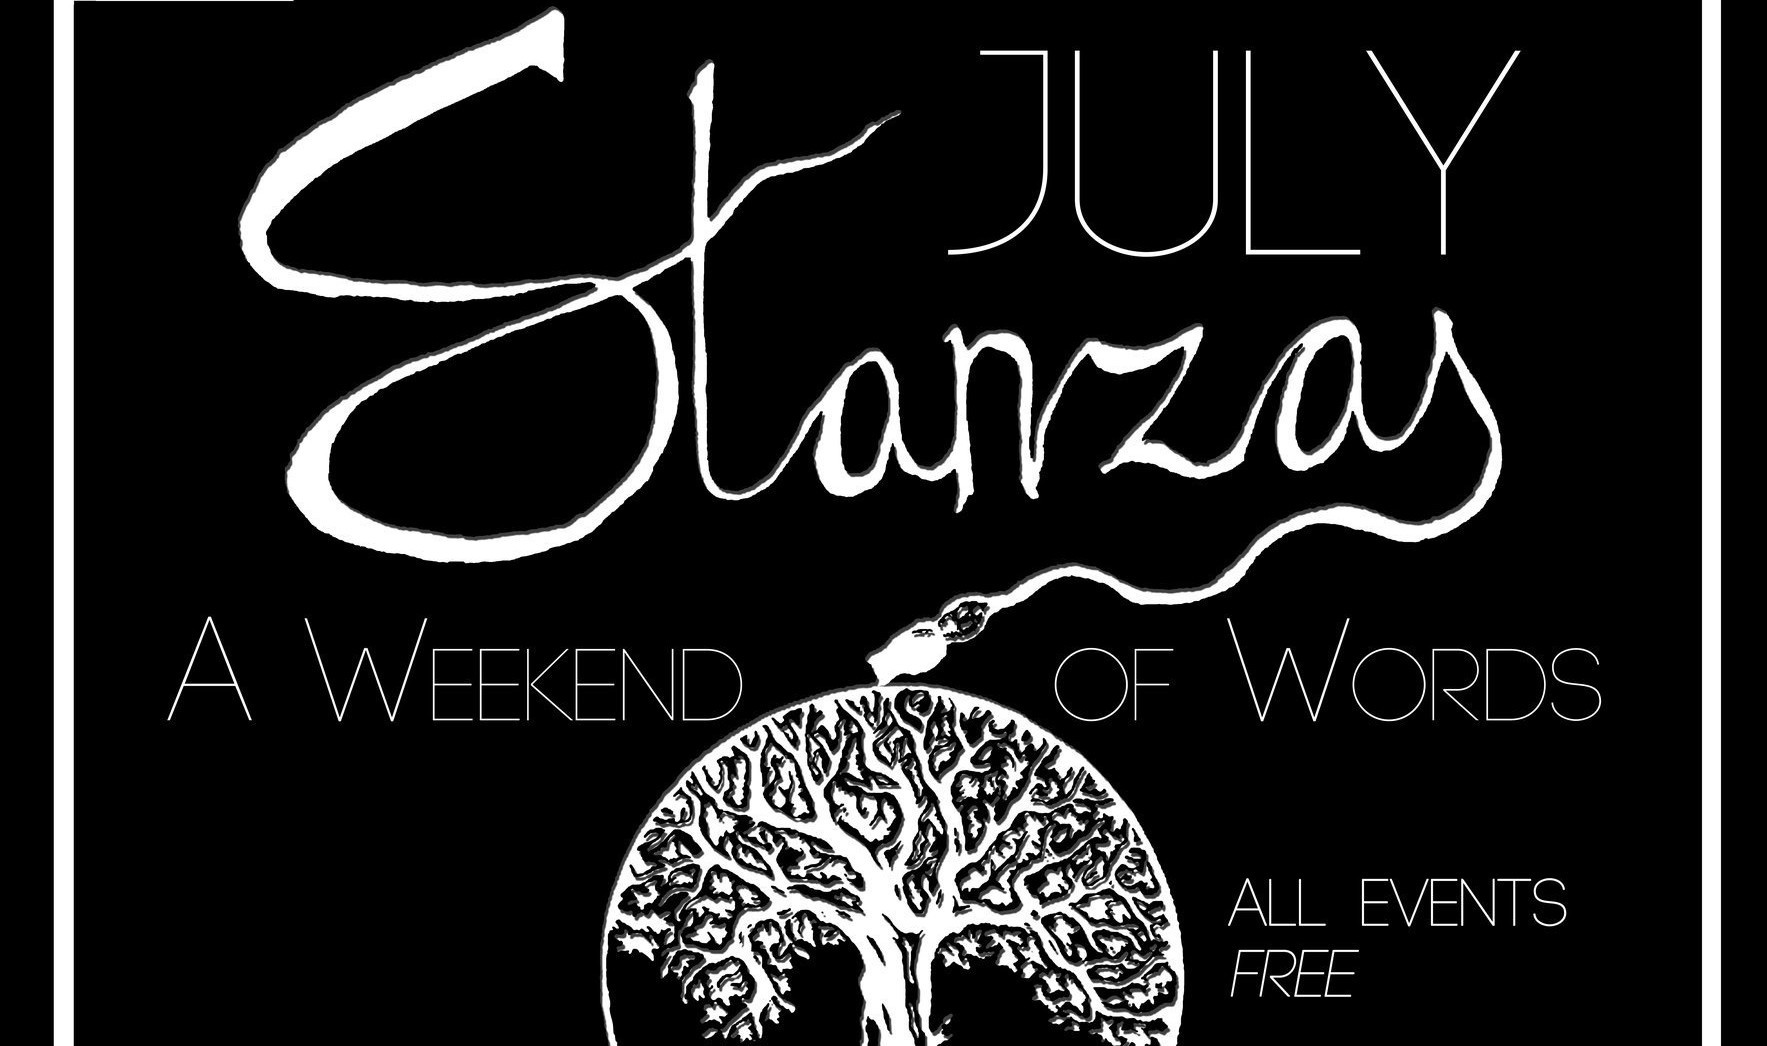 Stanzas Weekend of Words Festival July 2015